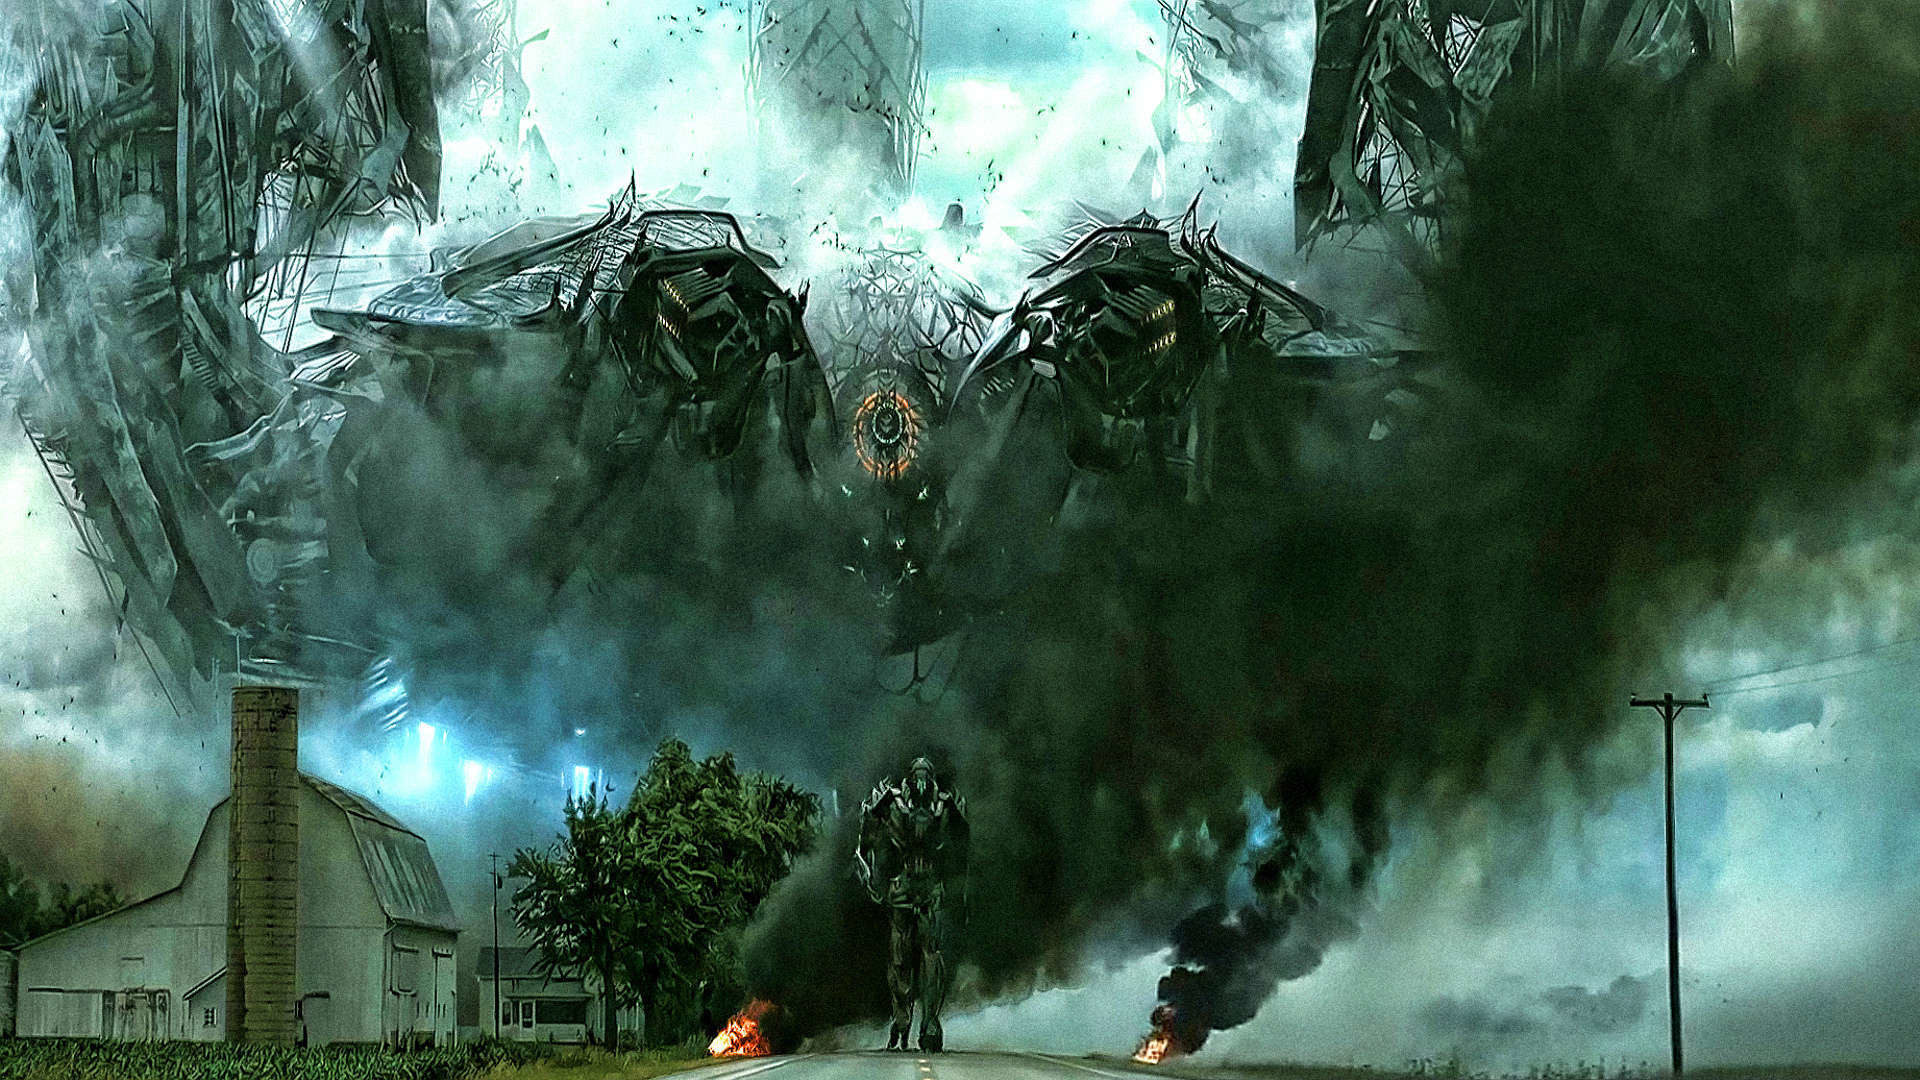 1920x1080 Transformers-4-lockdown-Wallpaper-1080p-full-hd-wallpaper